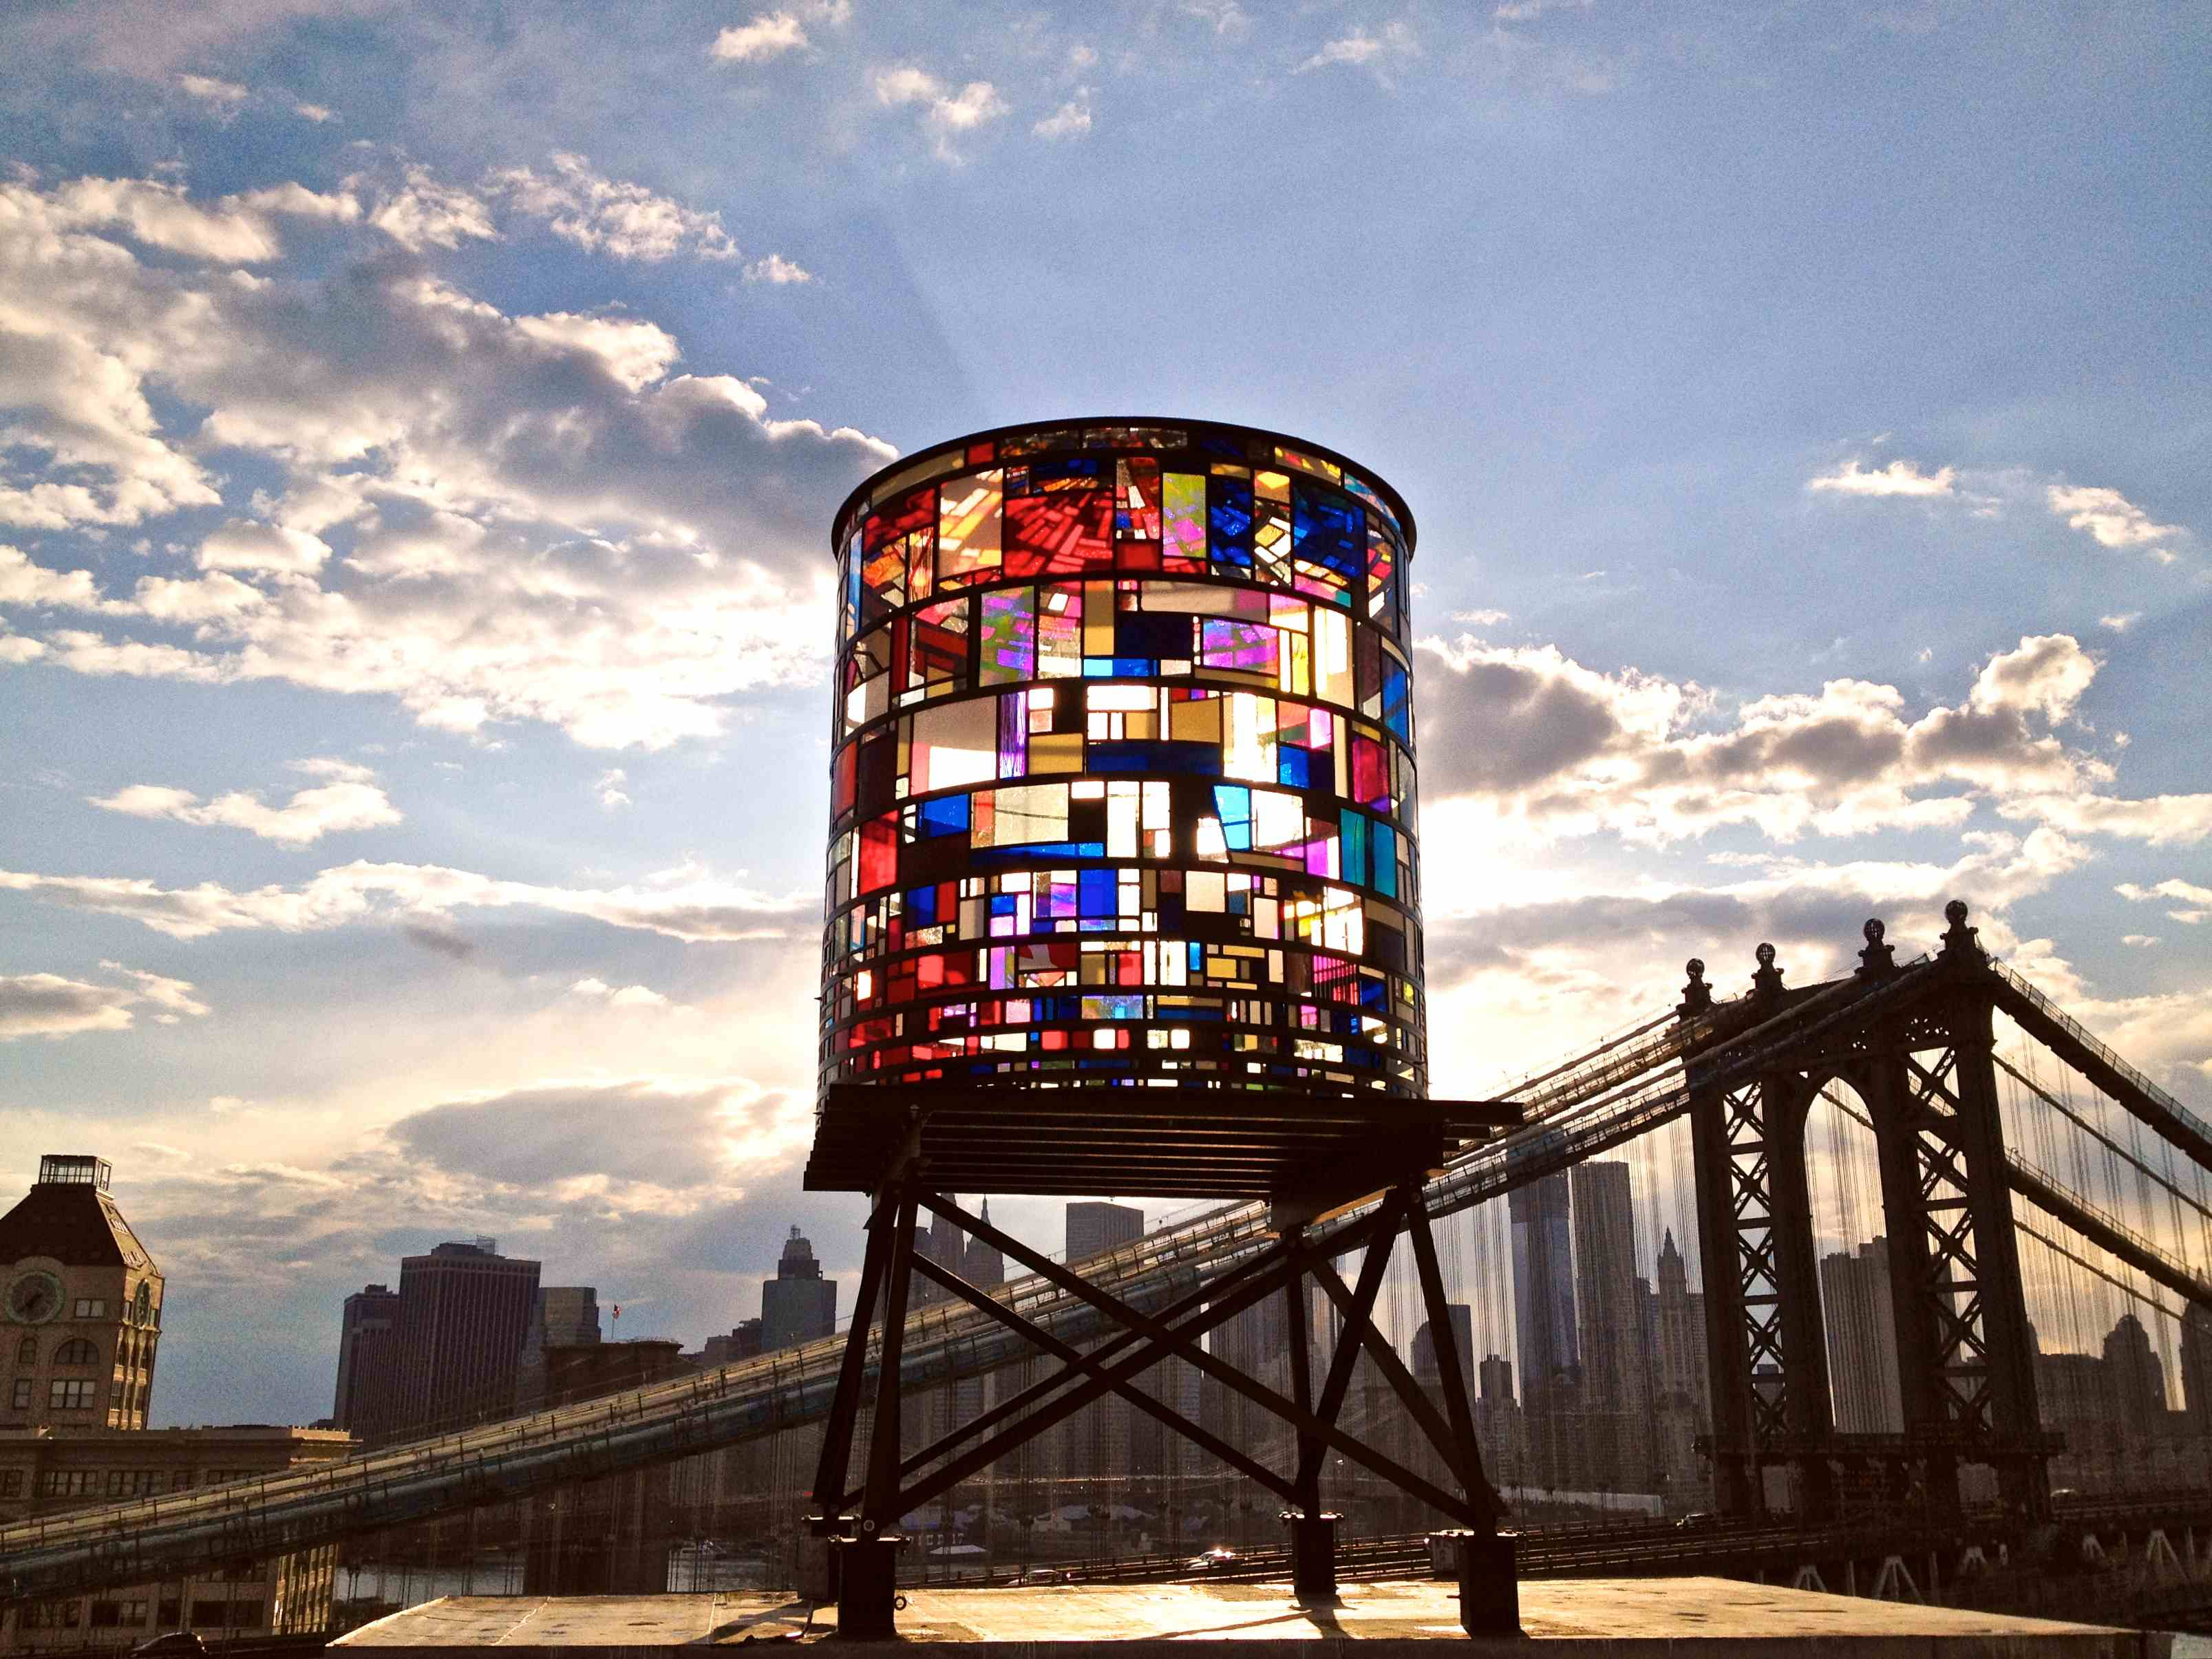 """Watertower"" by Tom Fruin is now on view in DUMBO (Photo by Robert Banat courtesy Tom Fruin)"